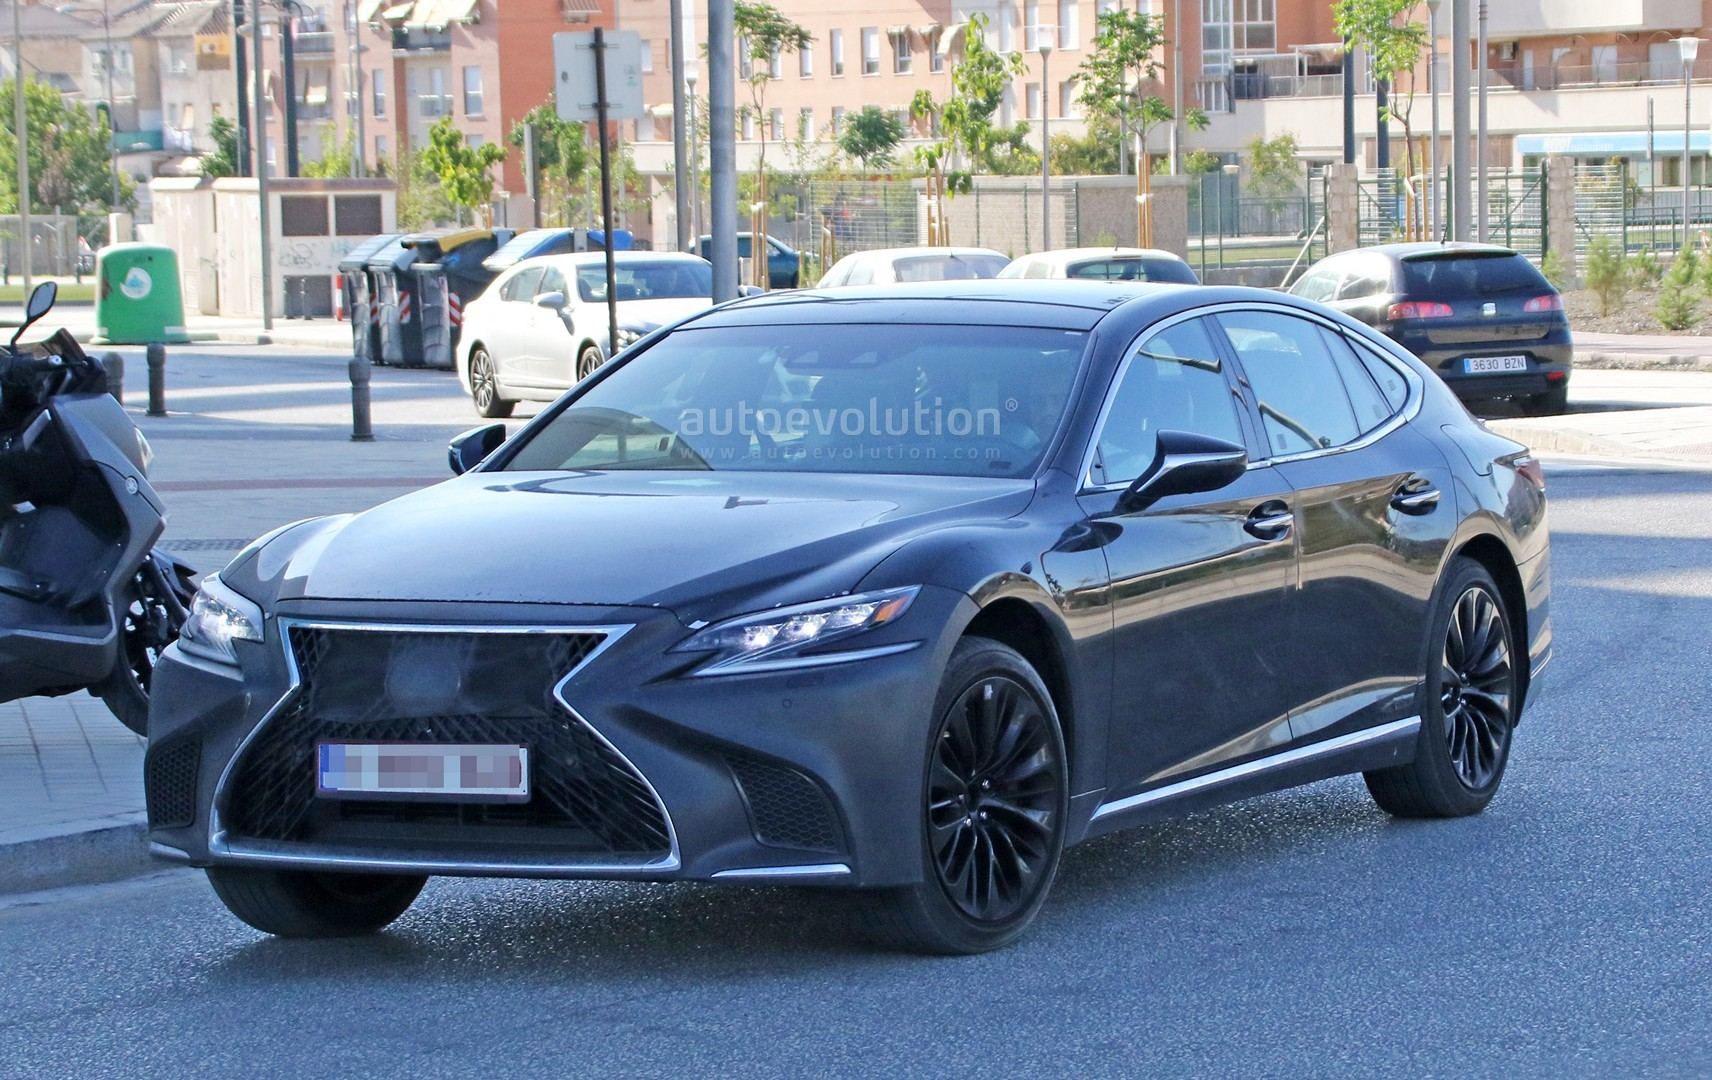 Spyshots: 2019 Lexus LS F Spotted, Could Pack Twin-Turbo V8 ...